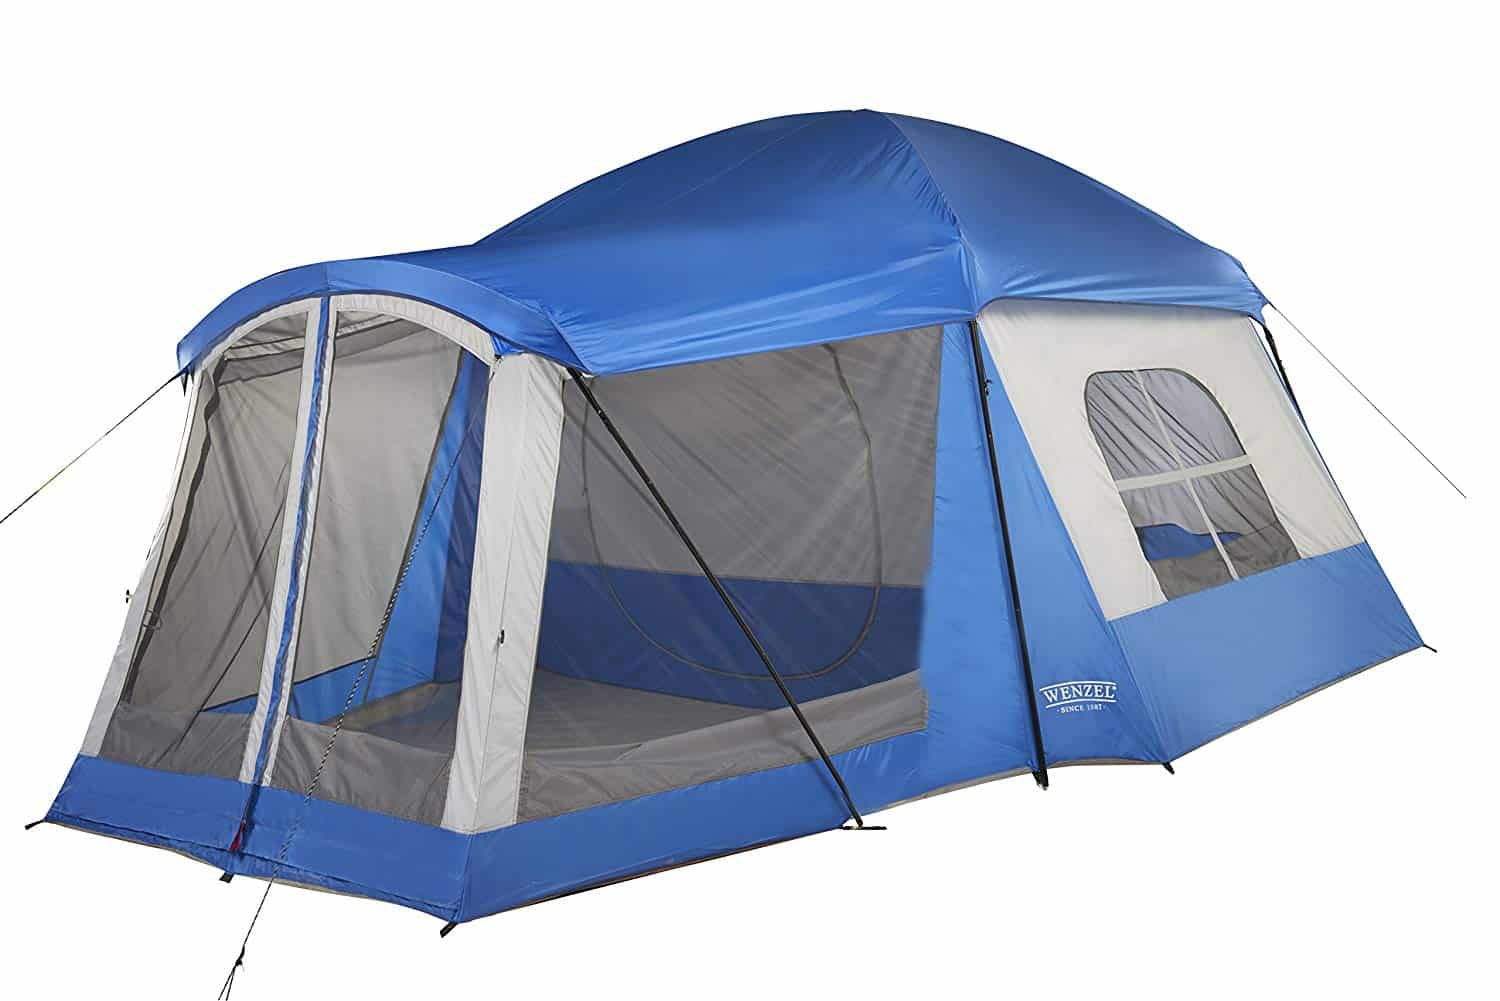 Wenzel 8-Person Tent